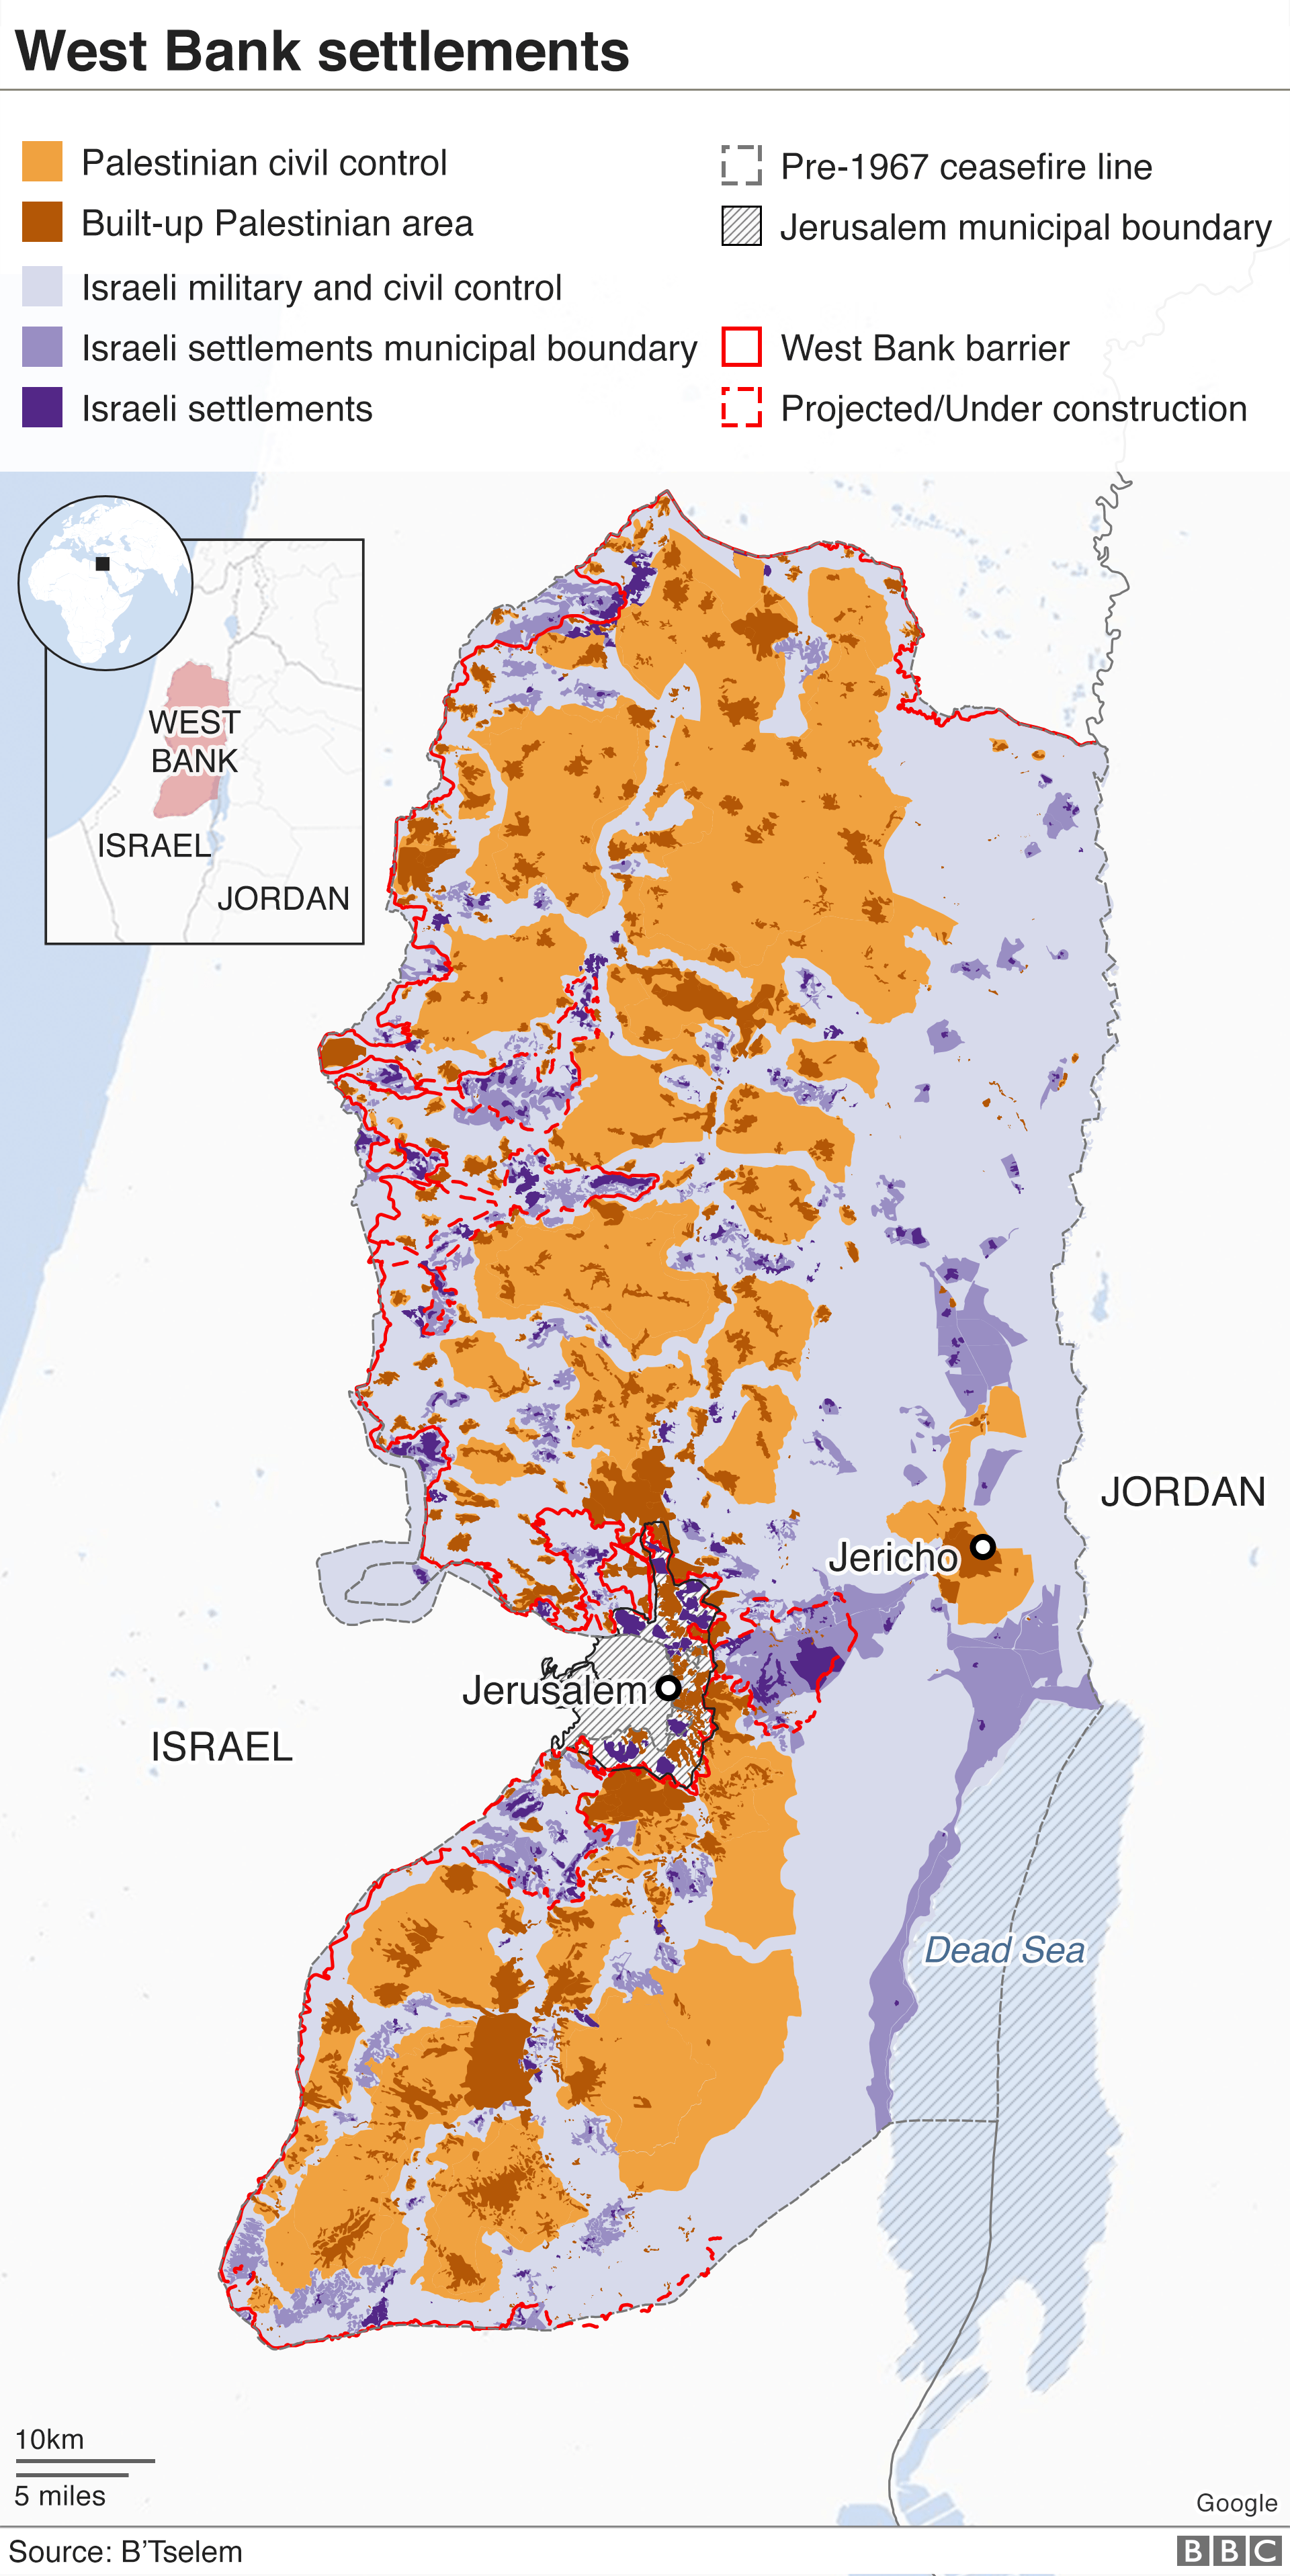 Map of the West Bank settlements